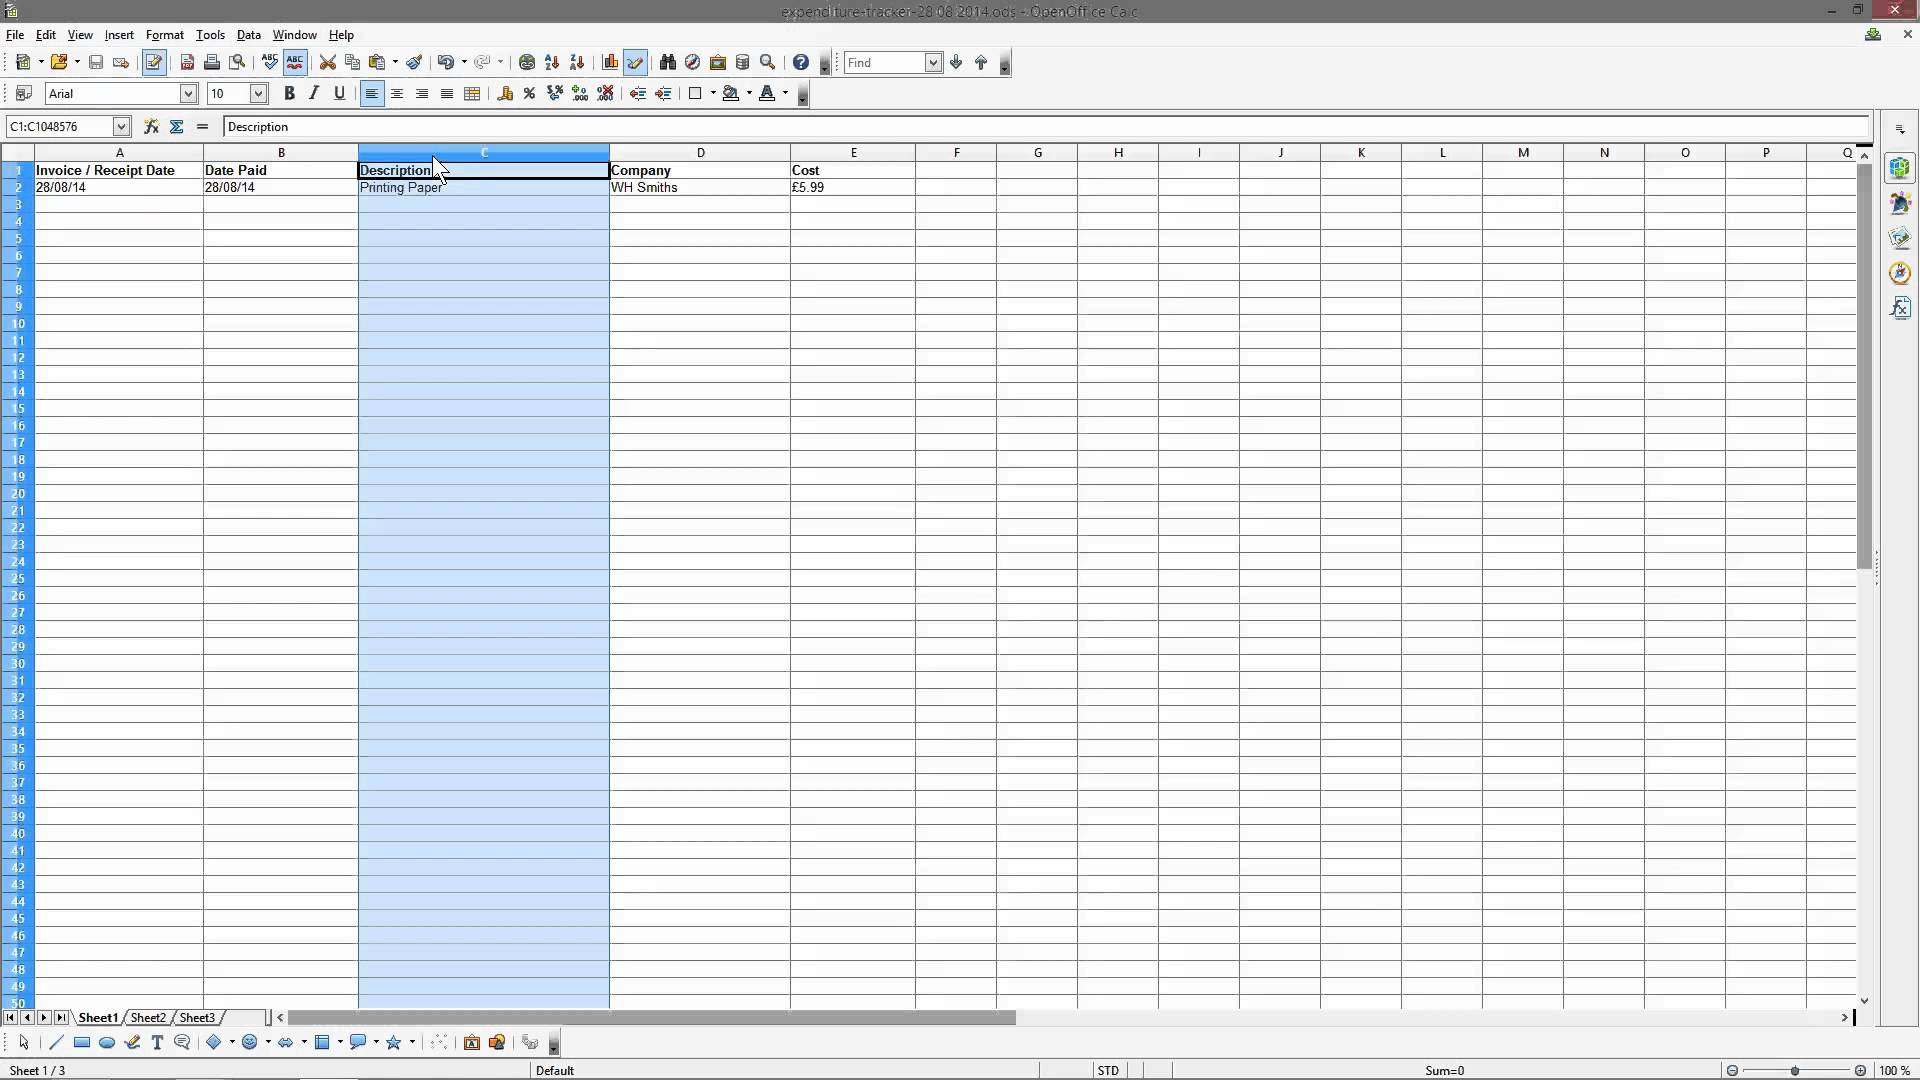 Income And Expenses Spreadsheet For Small Business Intended For Small Business Spreadsheet For Income And Expenses